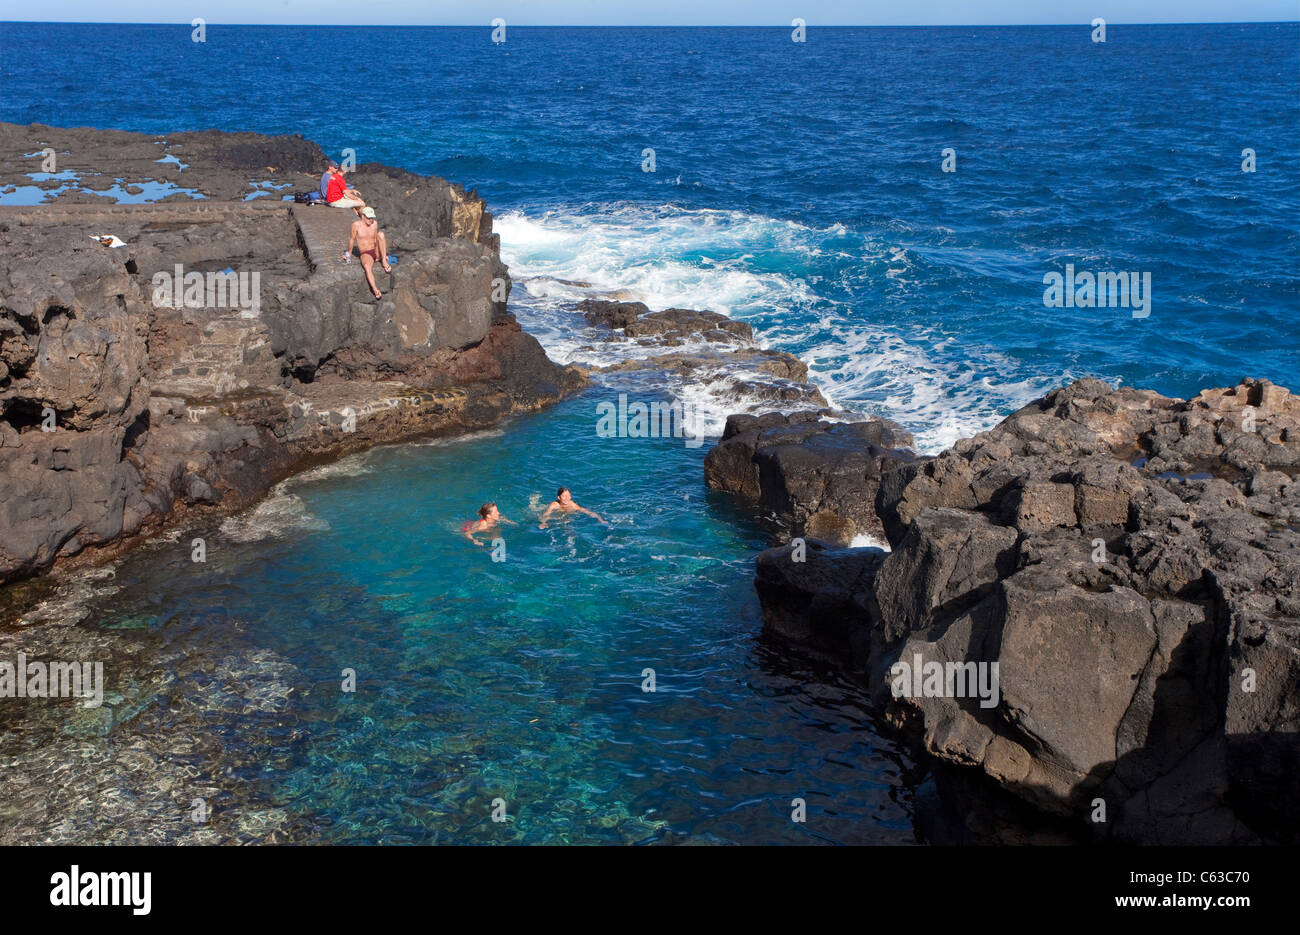 People at a natural pool, San Andres, La Palma, Canary islands, Spain, Europe - Stock Image